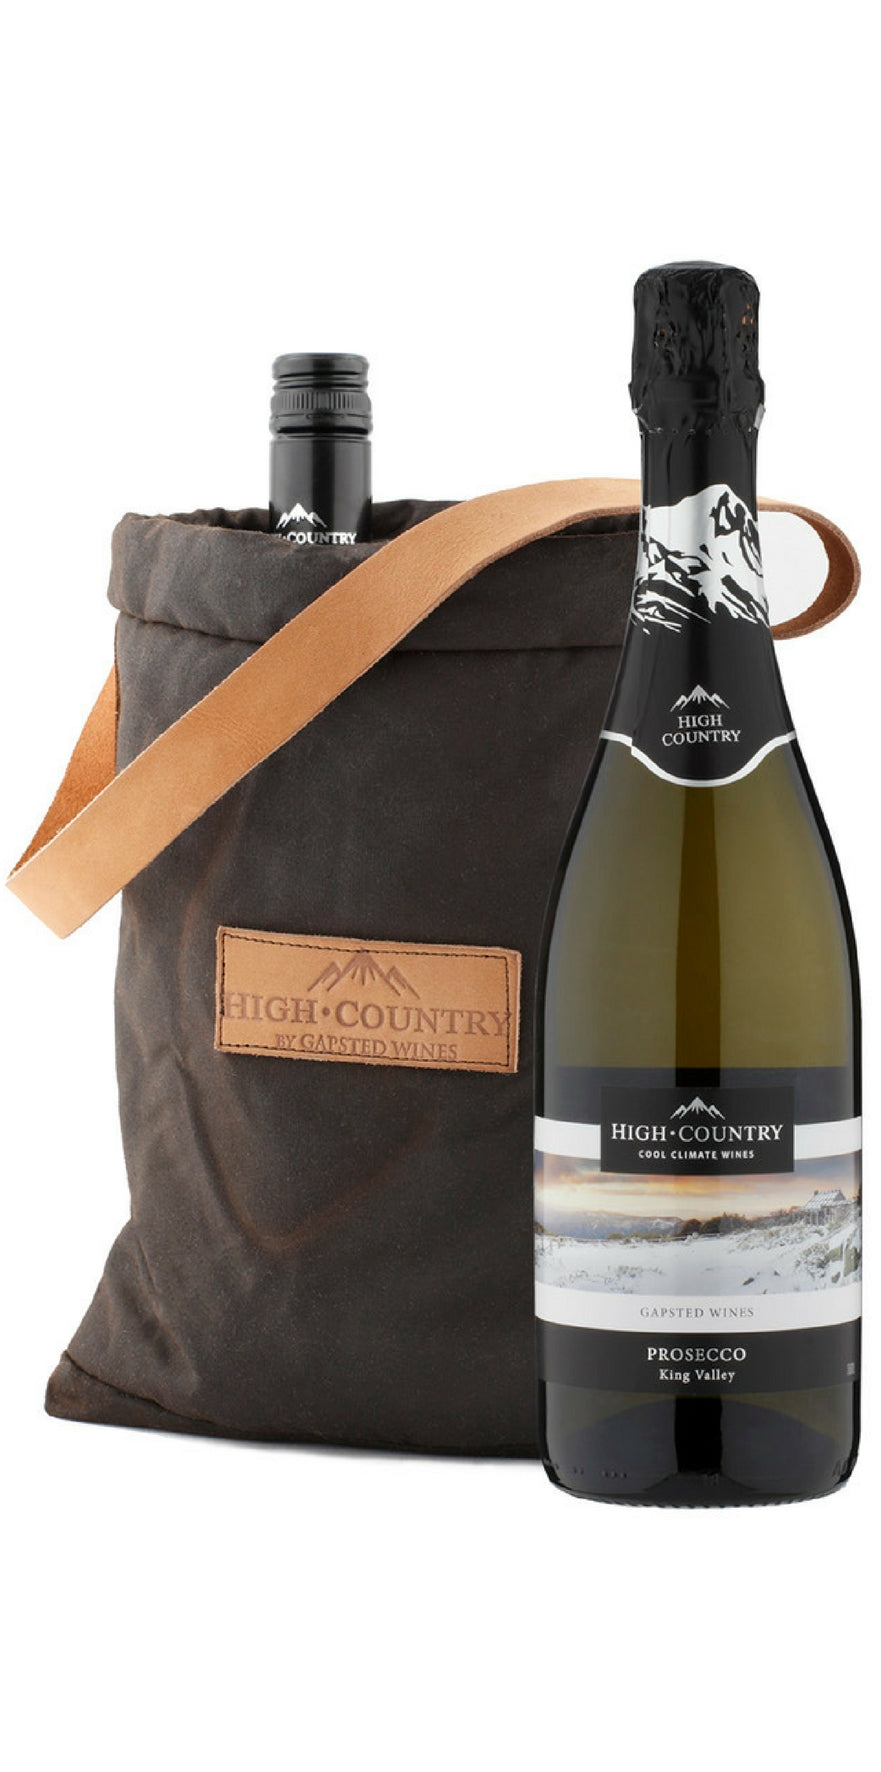 High Country Cooler Bag - Gapsted Wines